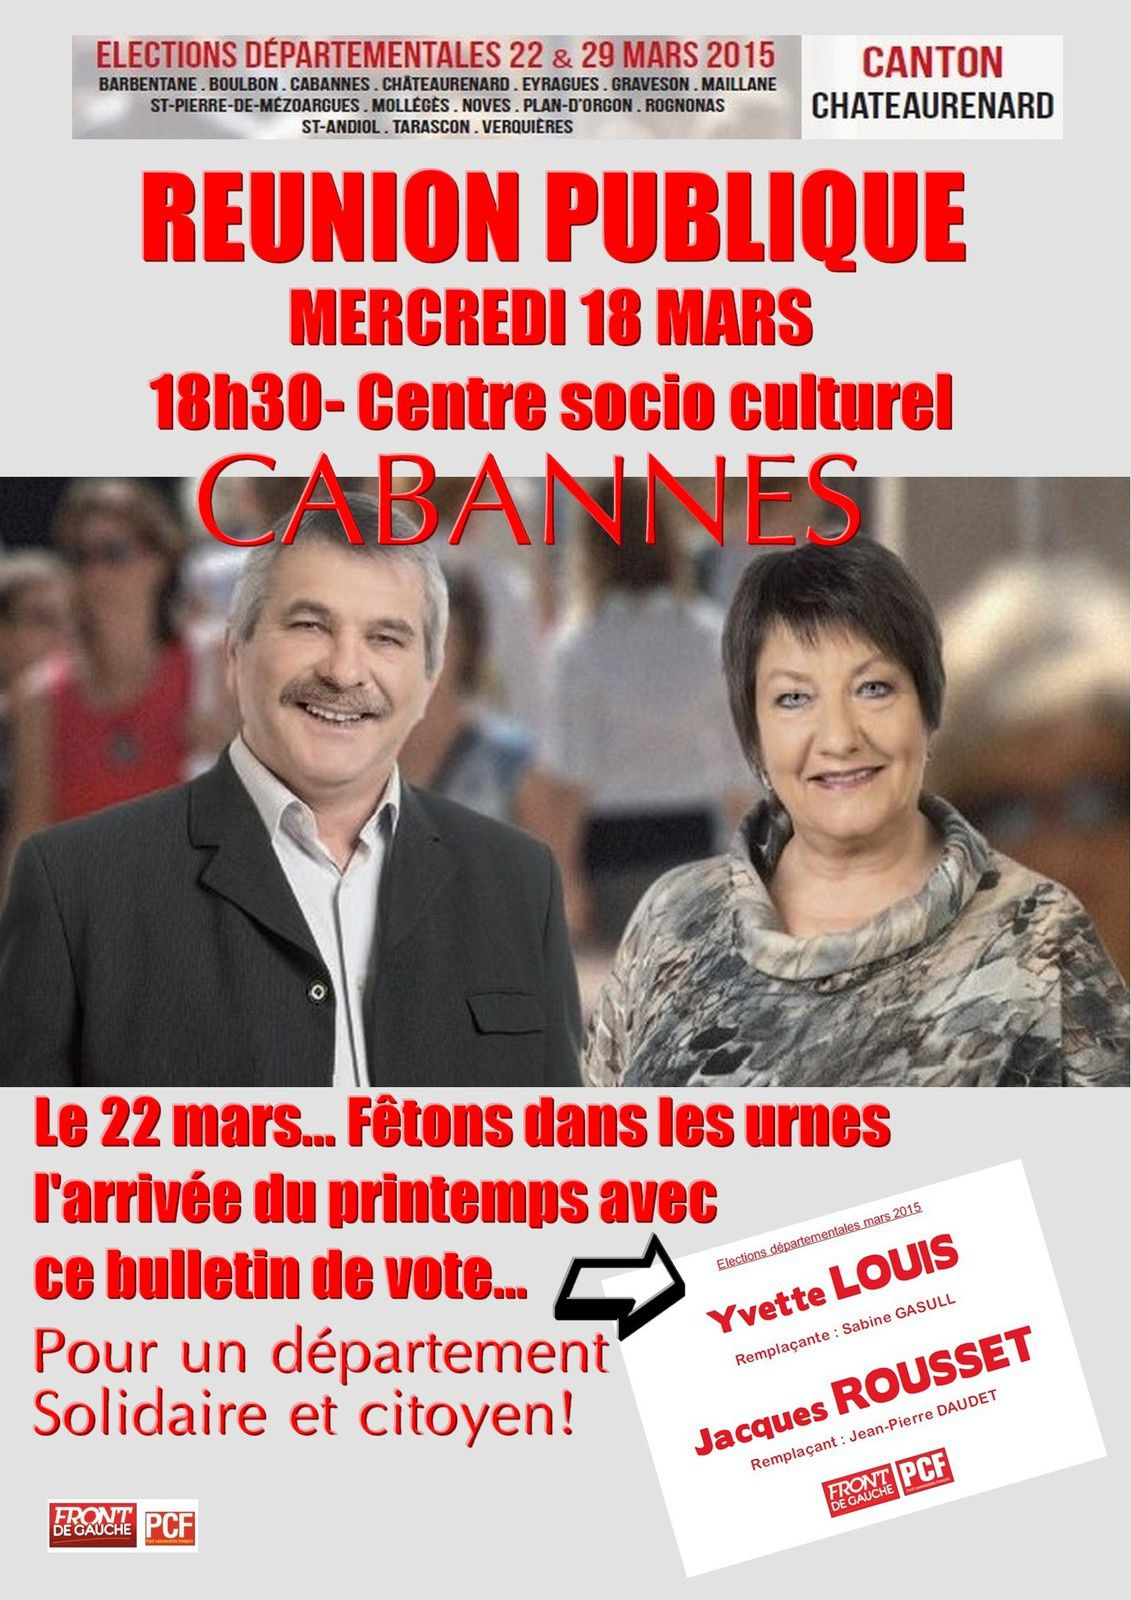 INVITATION...Mercredi 18 mars - 18h30 - centre socio culturel